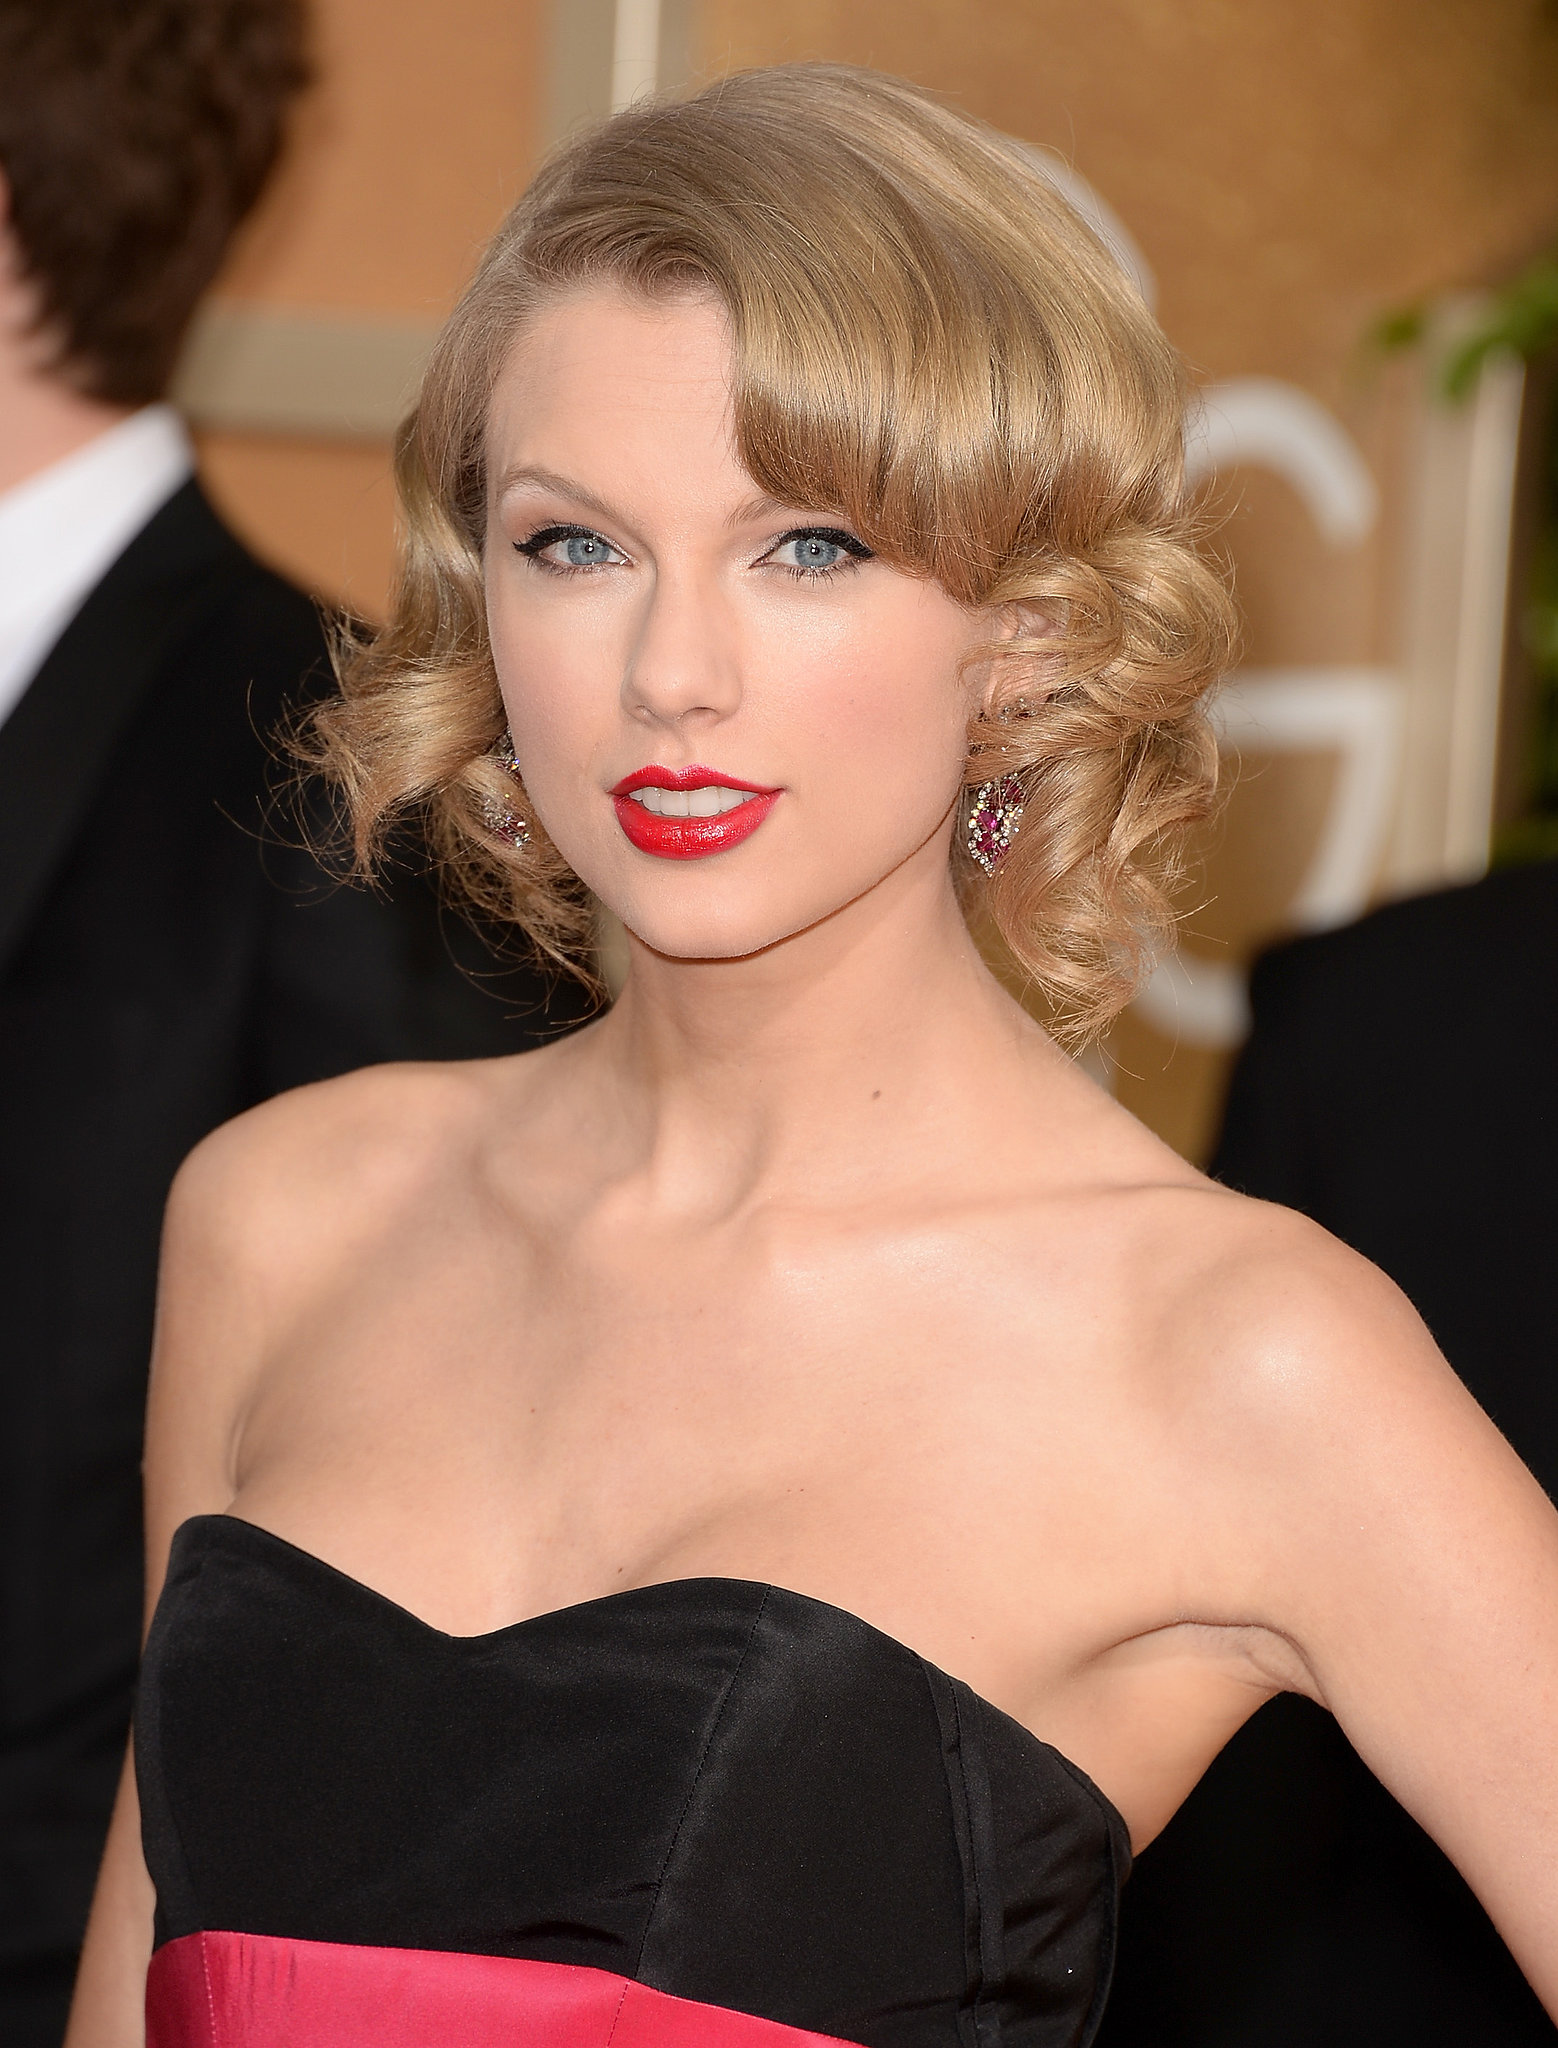 Taylor Swift nue, le hacker dclare avoir 6 photos ! fan2